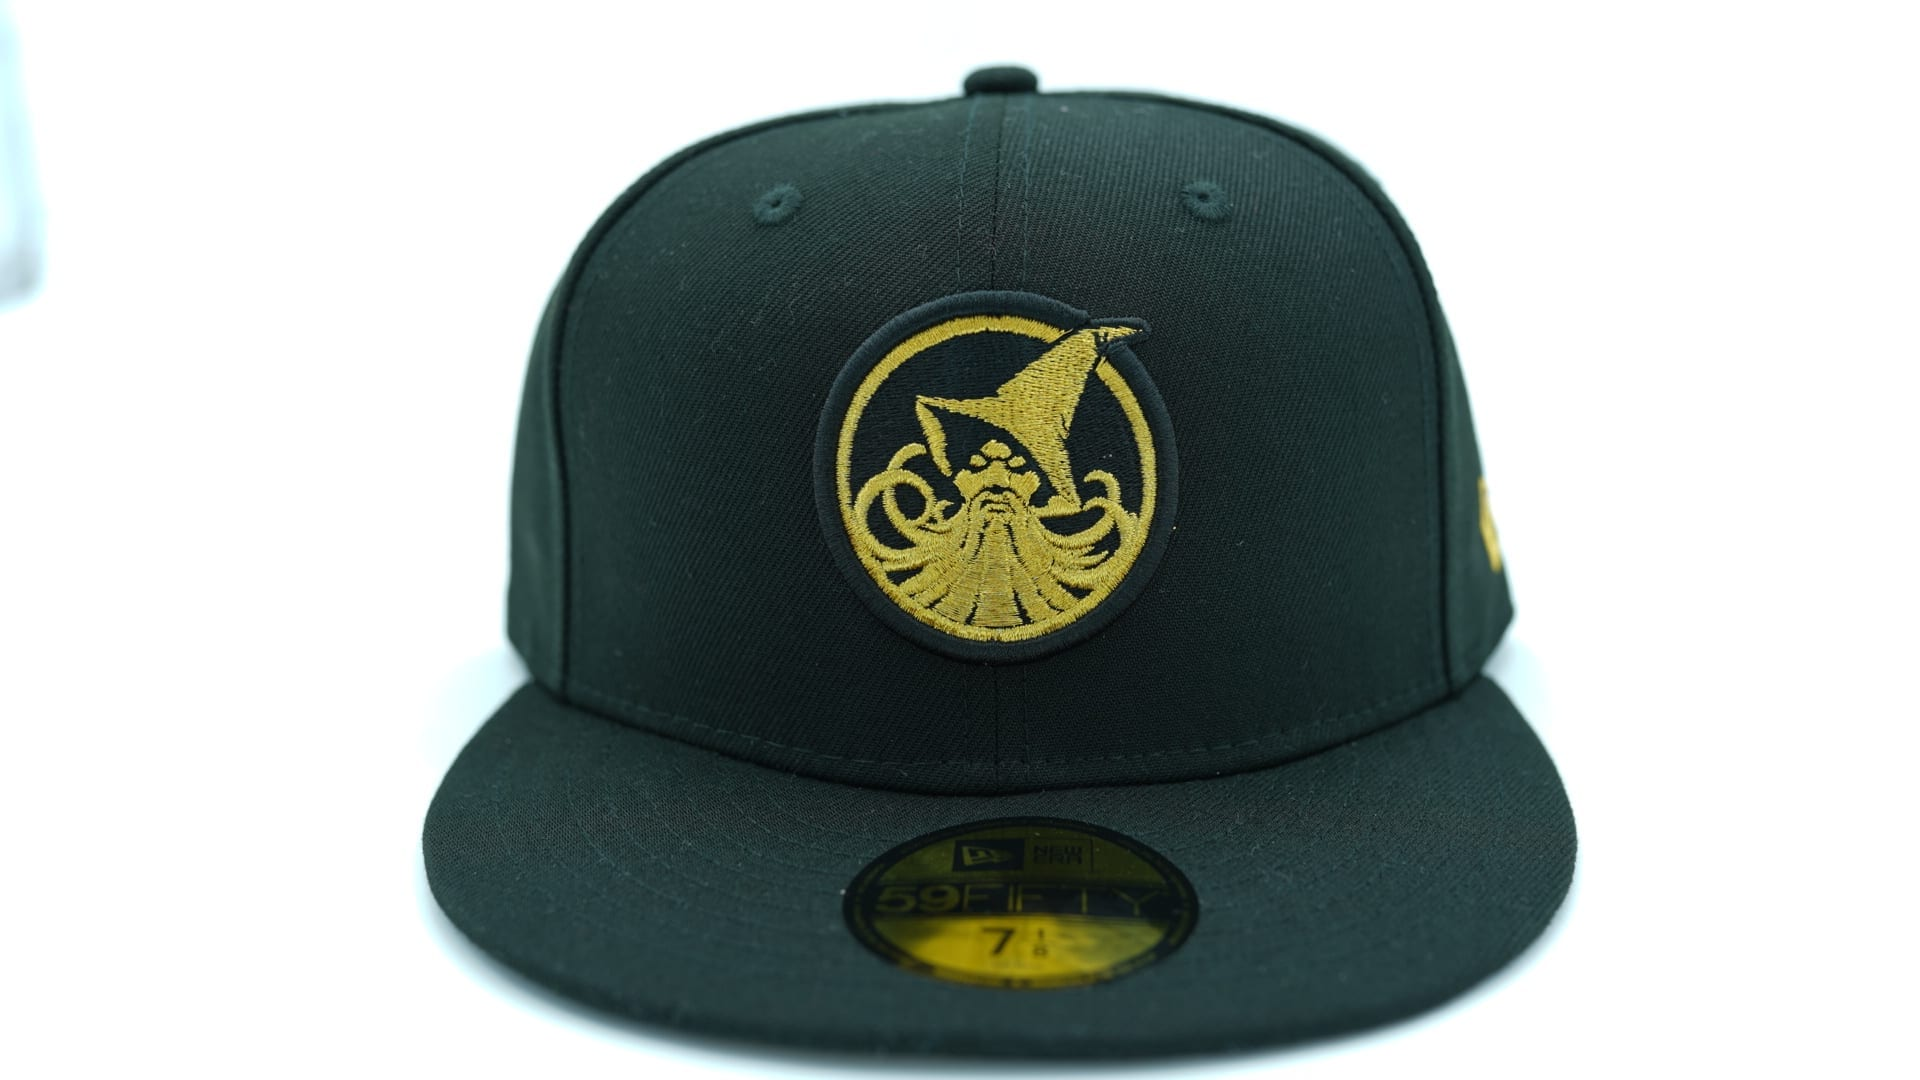 456f70ccfa8 new-era-59Fifty-fitted-baseball-cap-hat. NEW ERA is back to collaborate  with Hello Kitty ...